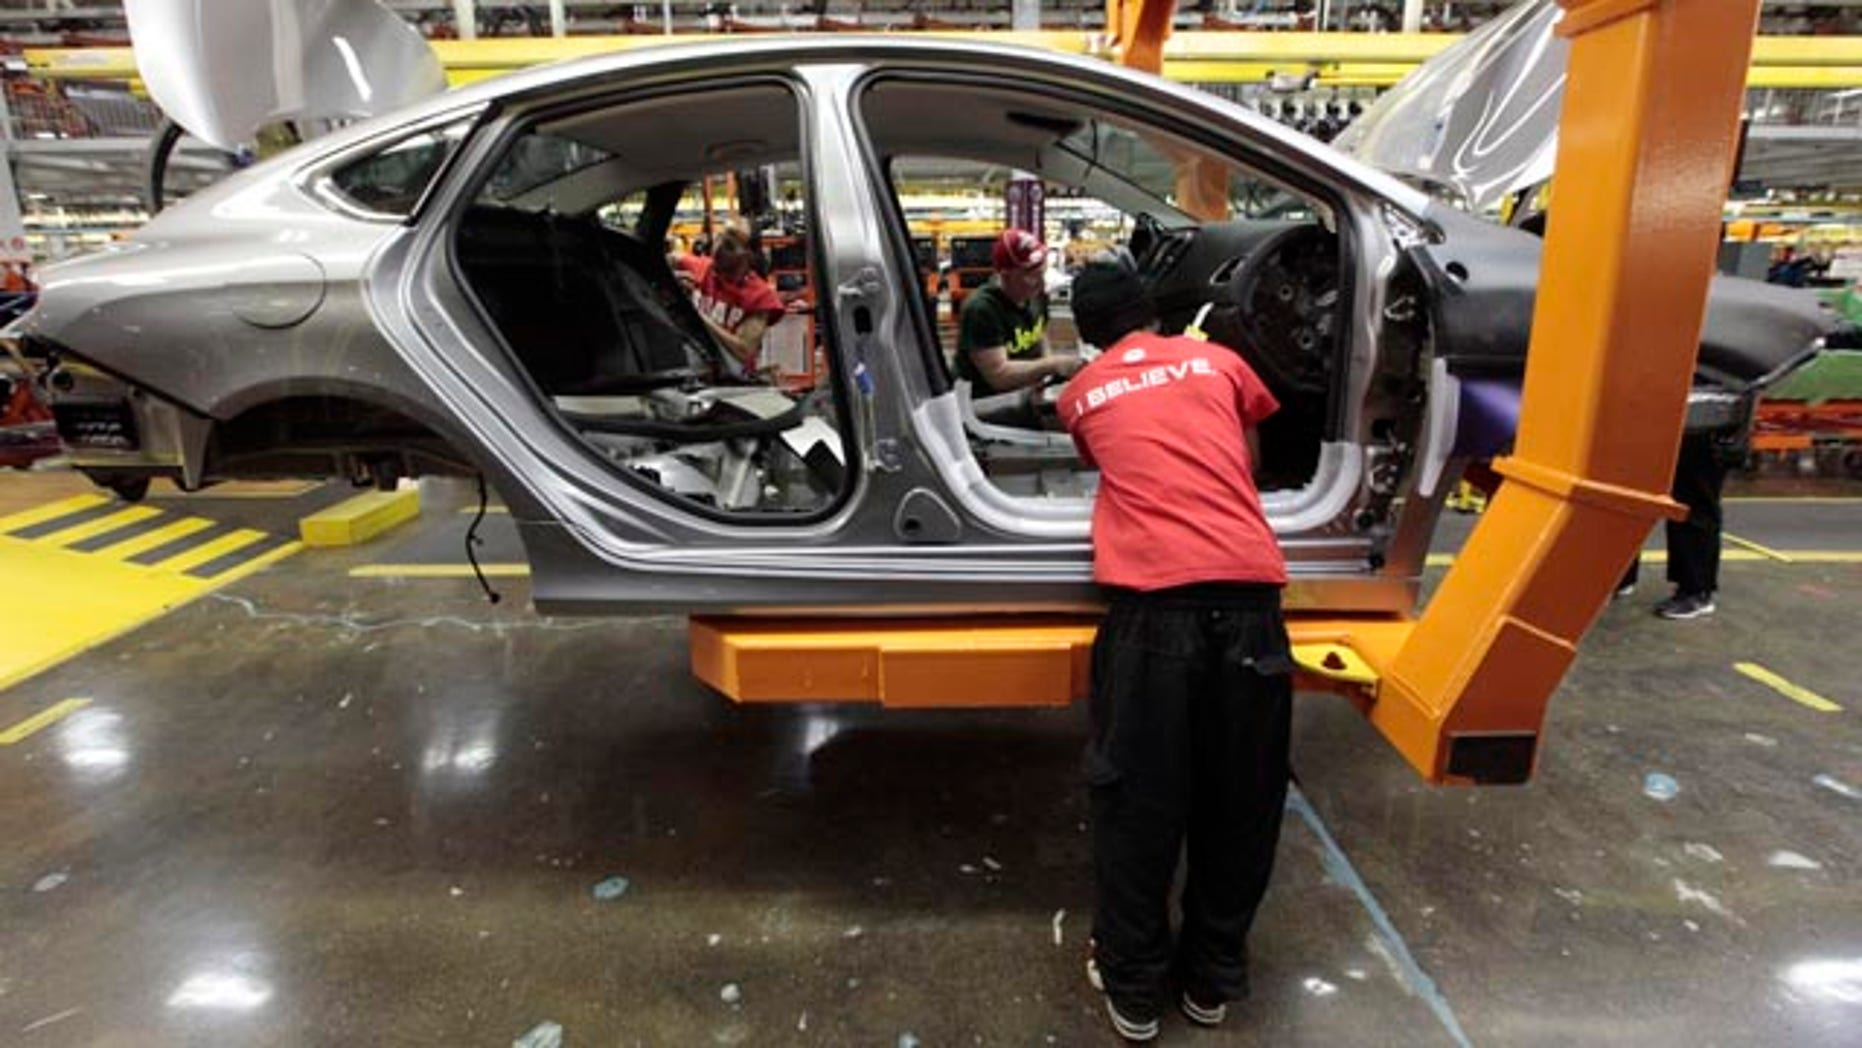 FILE - In this March 14, 2014 file photo, assembly line workers build a 2015 Chrysler 200 automobile at the Sterling Heights Assembly Plant in Sterling Heights, Mich. (AP Photo/Paul Sancya, File)